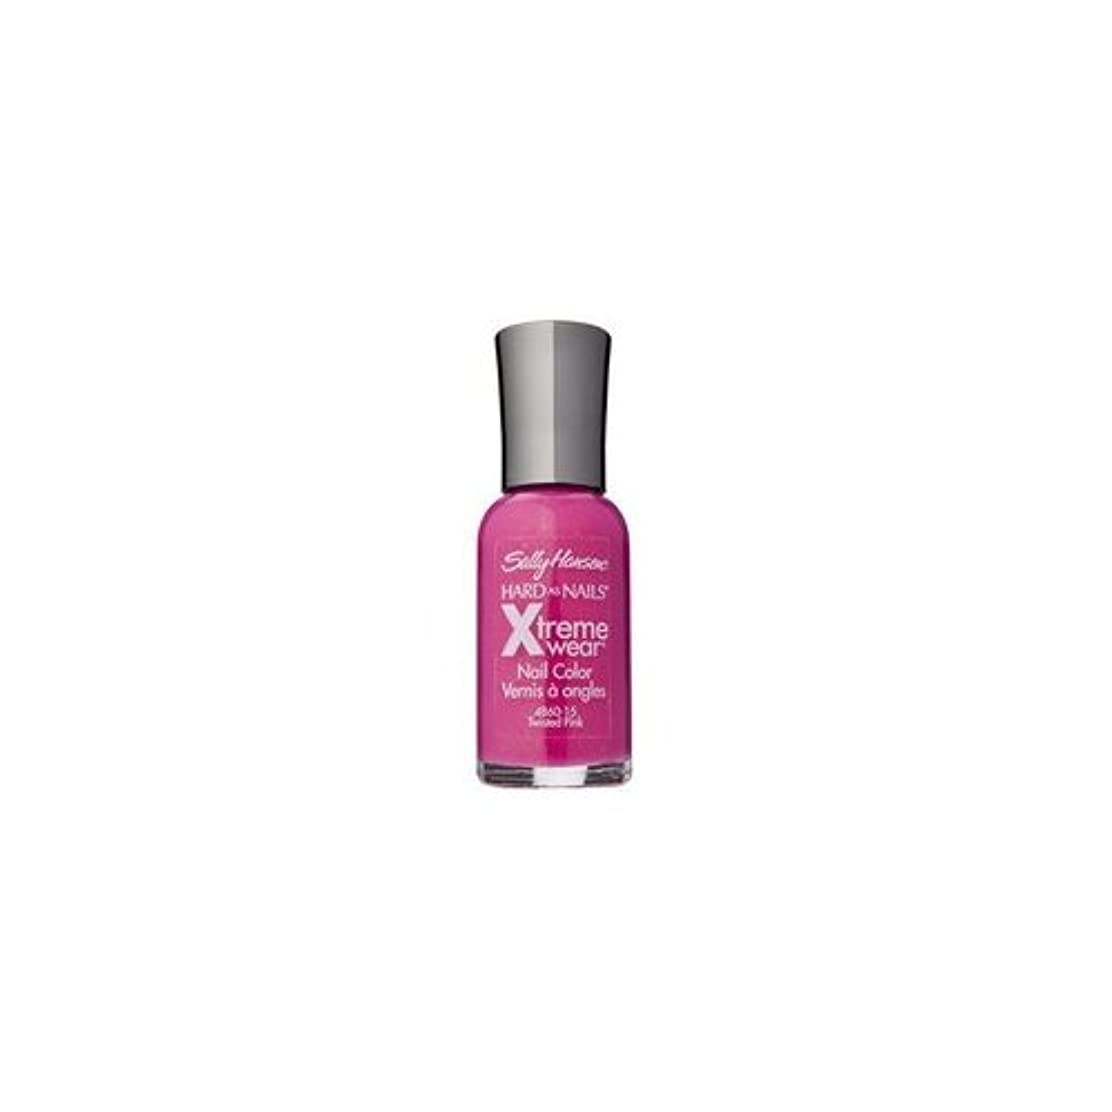 SALLY HANSEN Hard As Nails Xtreme Wear - Twisted Pink (並行輸入品)